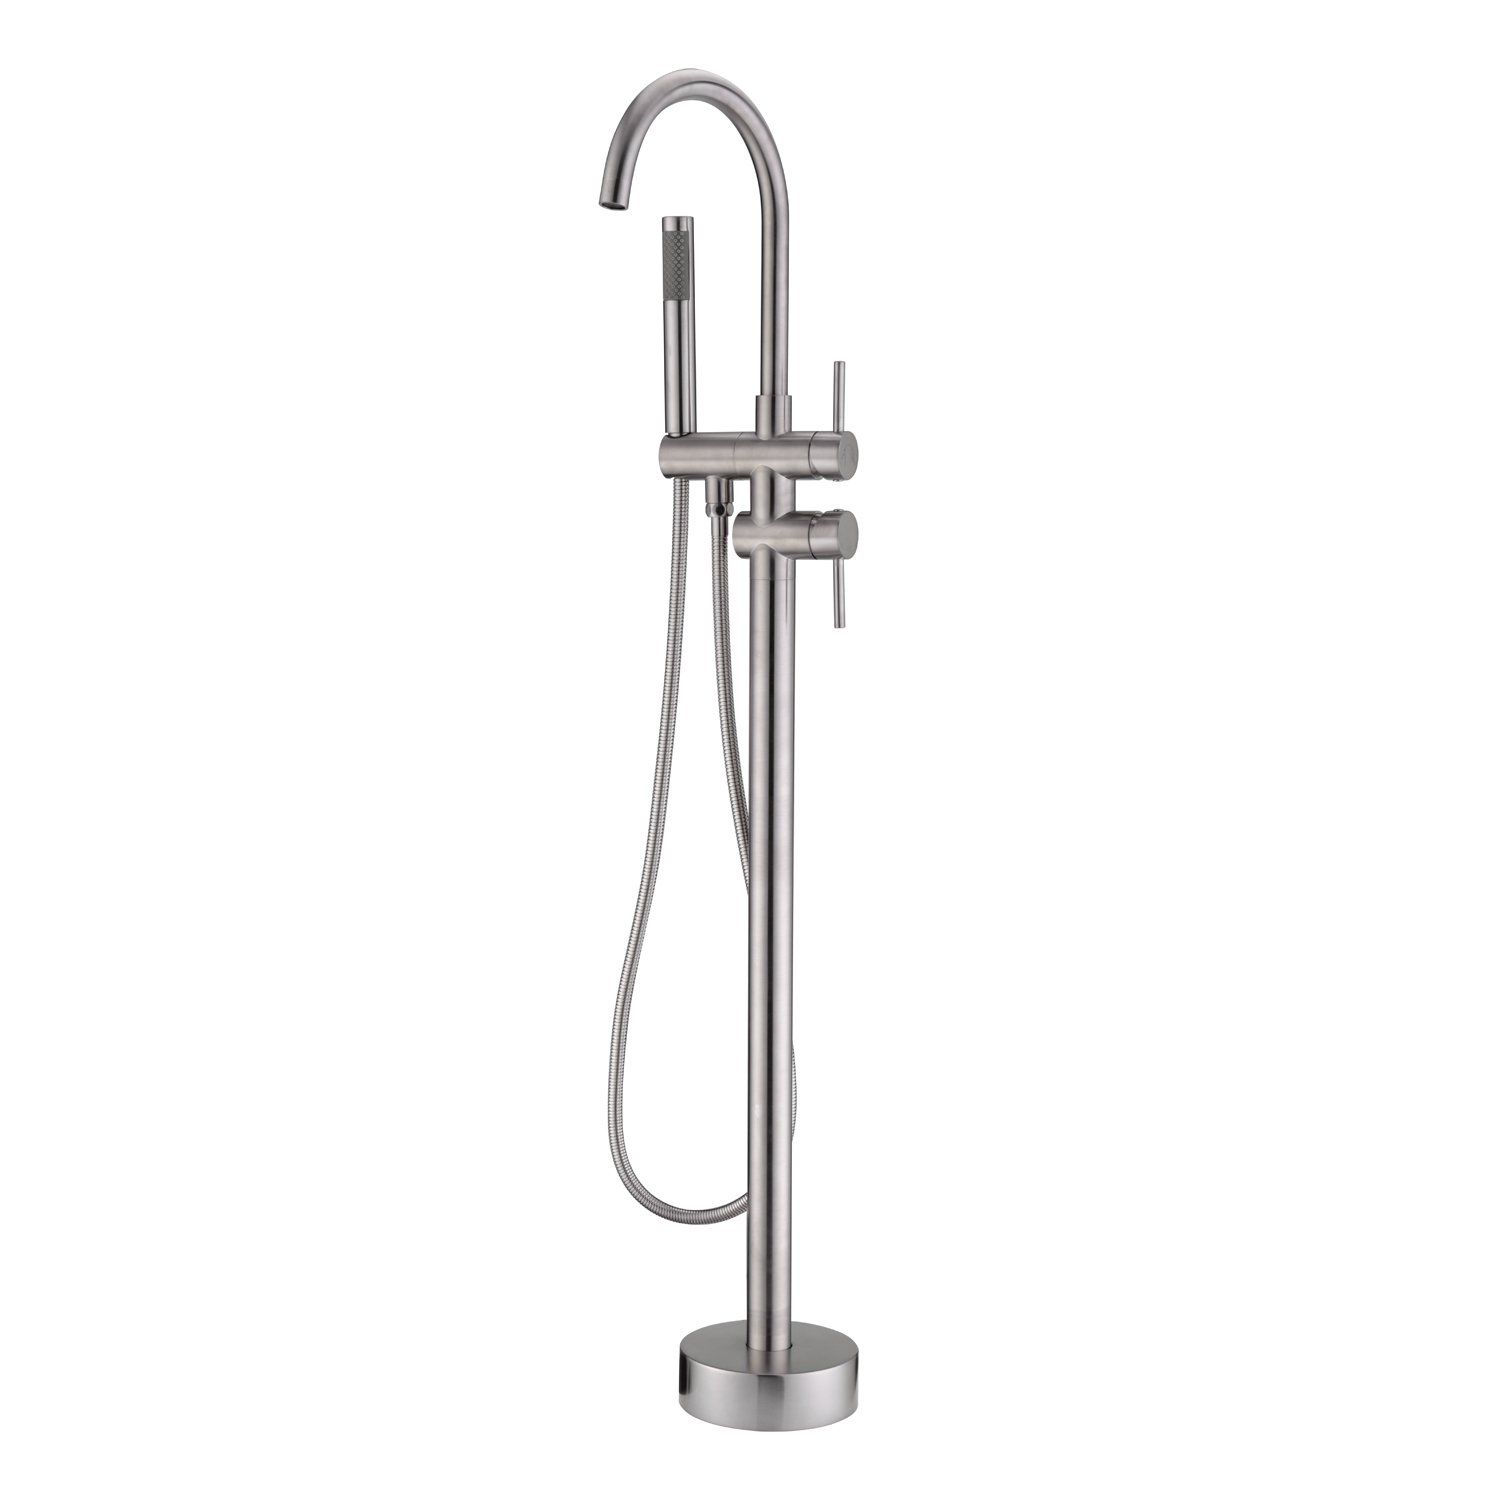 Artiqua Freestanding Tub Filler Bathtub Faucet Brushed Nickel Floor